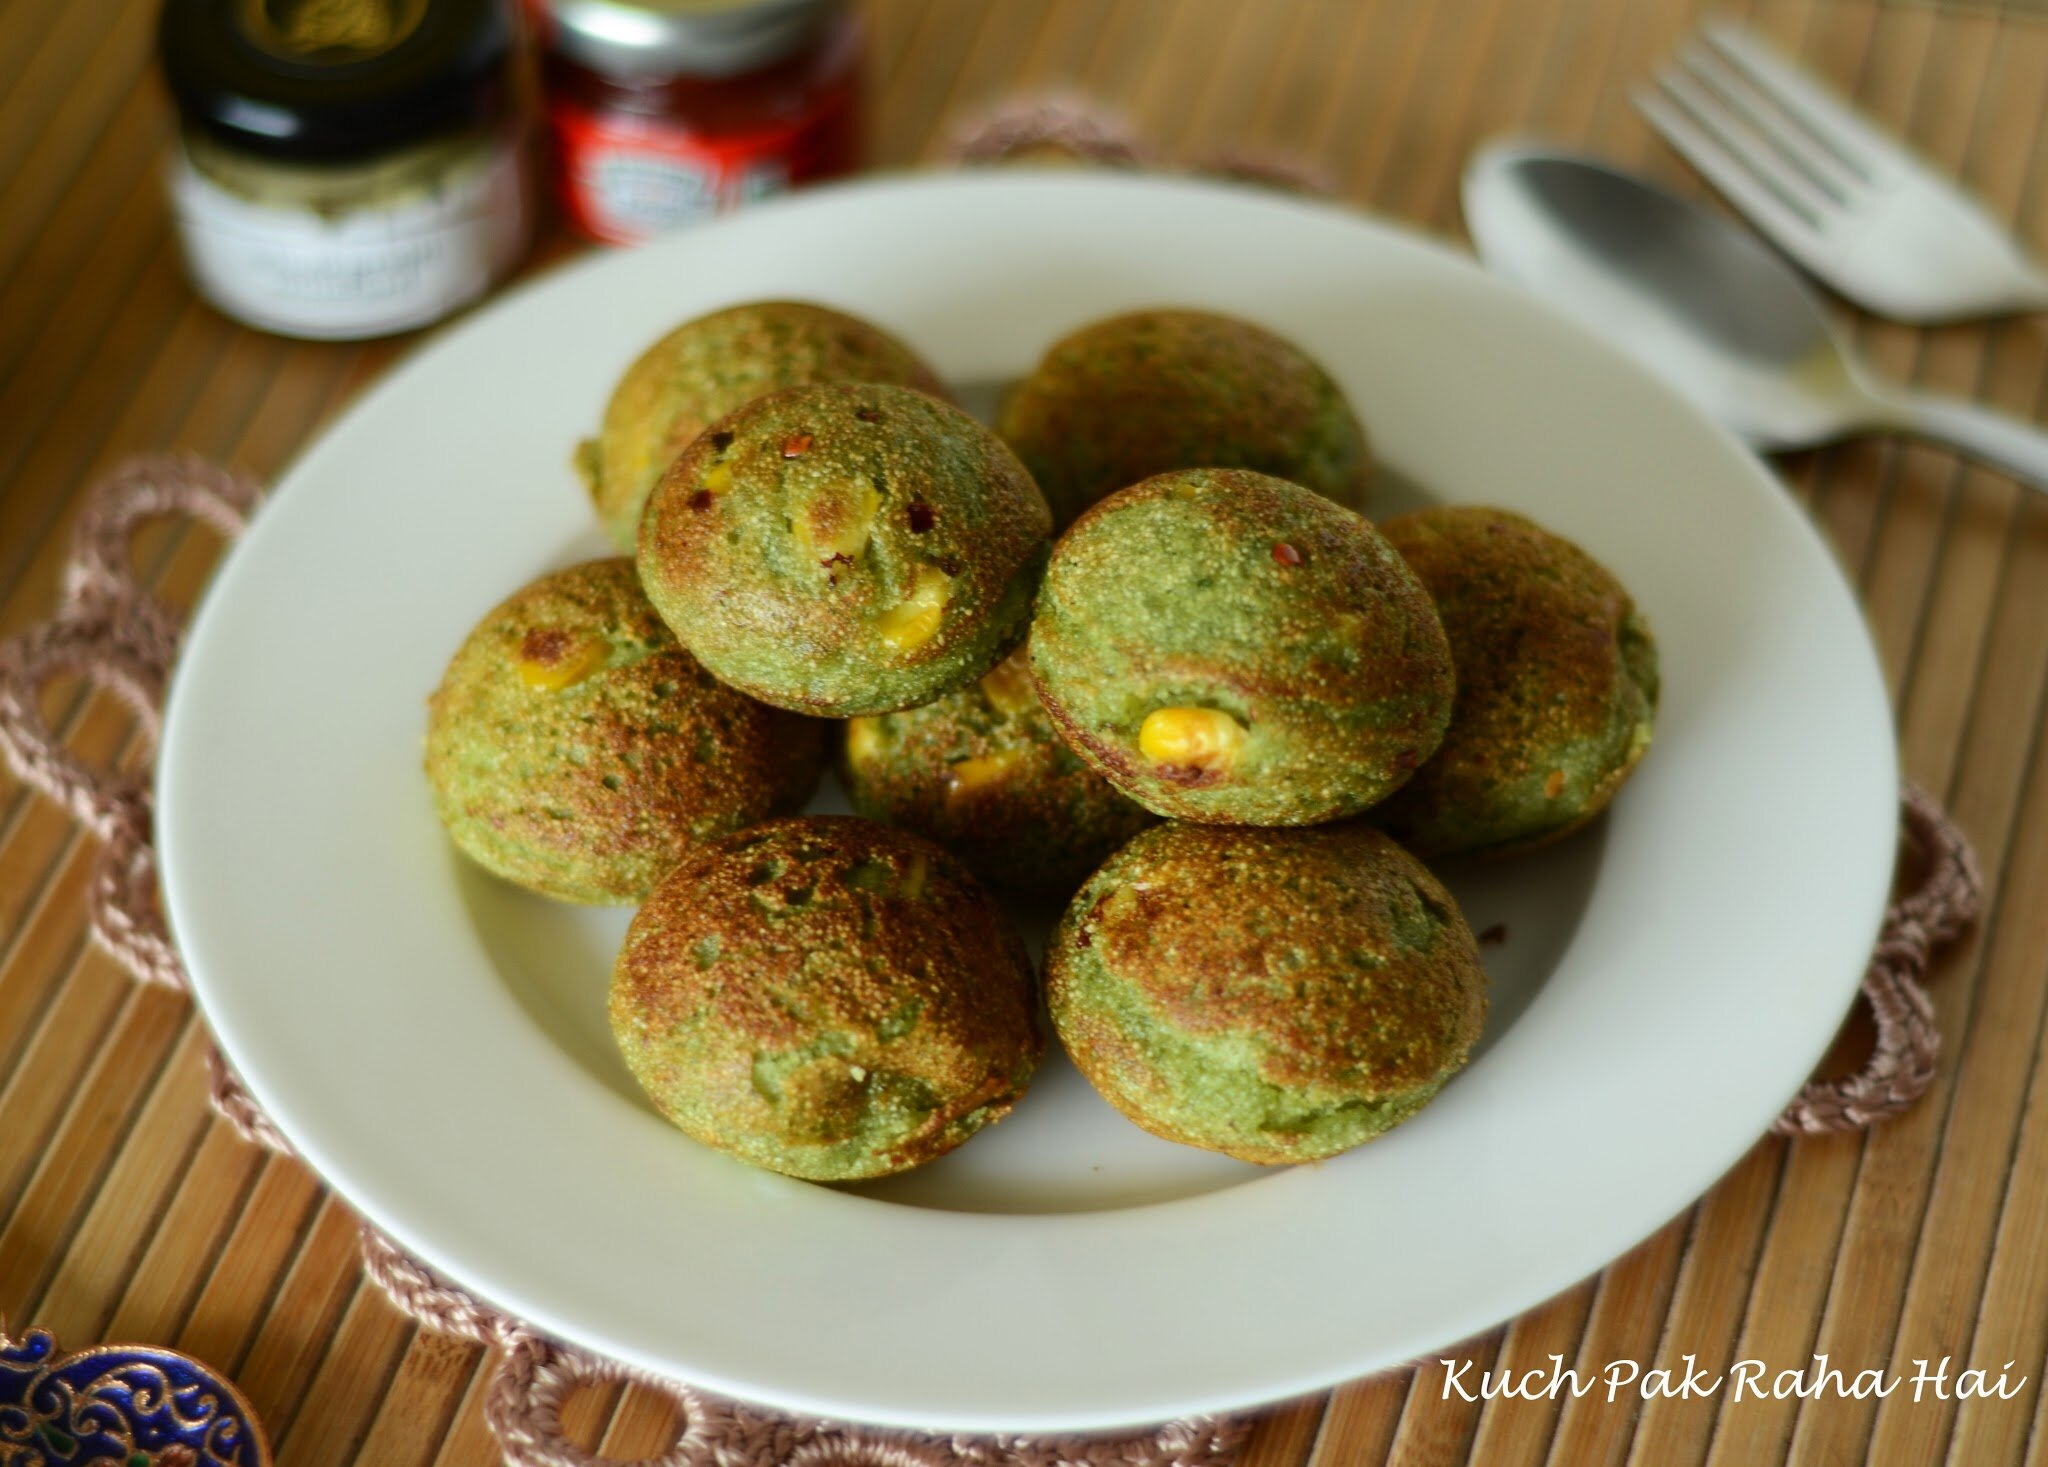 Spinach Corn Appe with Paneer stuffing